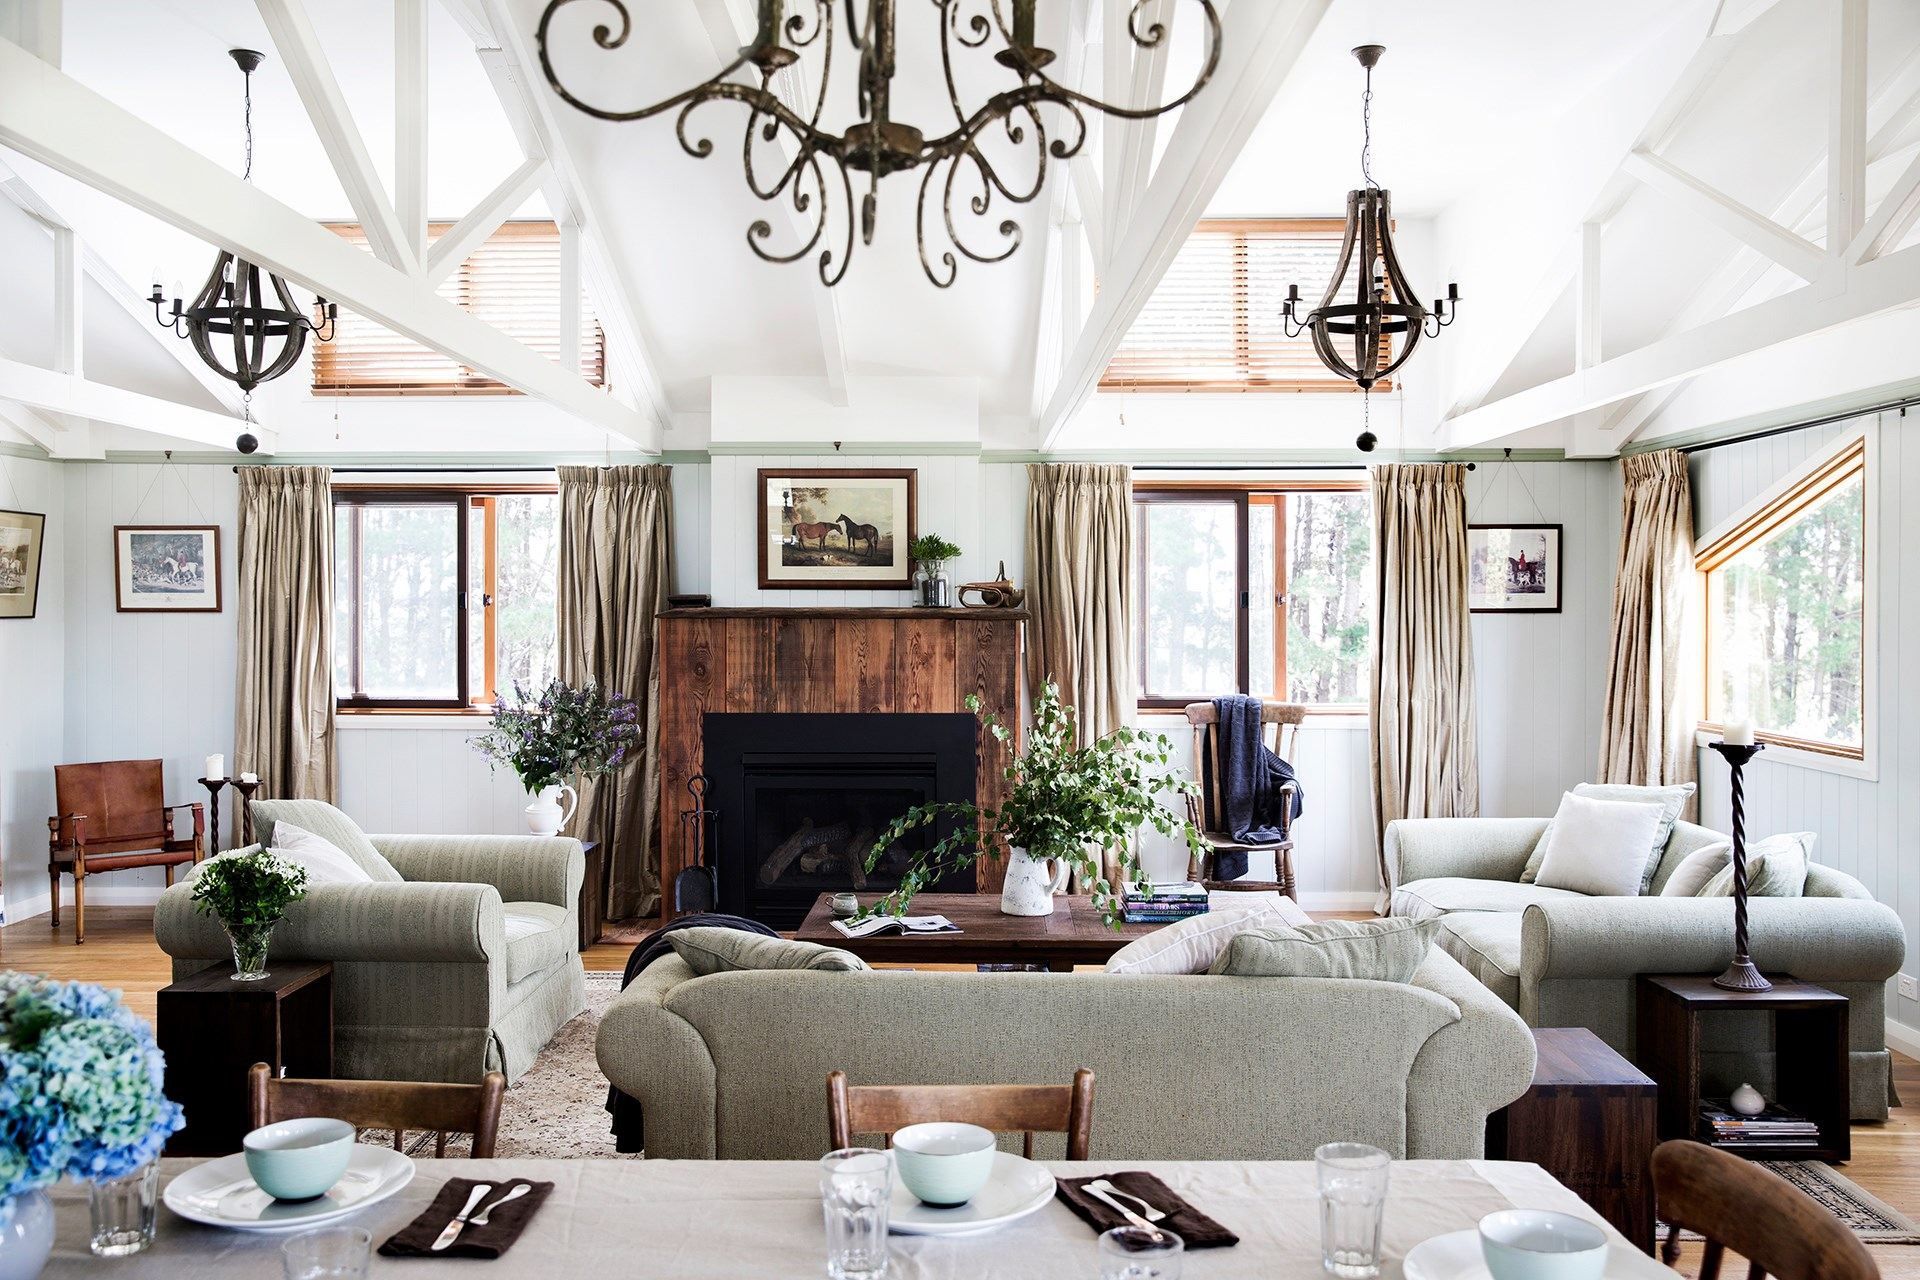 """A chef and furniture restorer have carved a beautiful home out of a rustic barn in NSW's Southern Highlands. Take a tour of this [big-hearted barn conversion](http://www.homestolove.com.au/gallery-brigid-and-kevins-southern-highlands-barn-conversion-2076